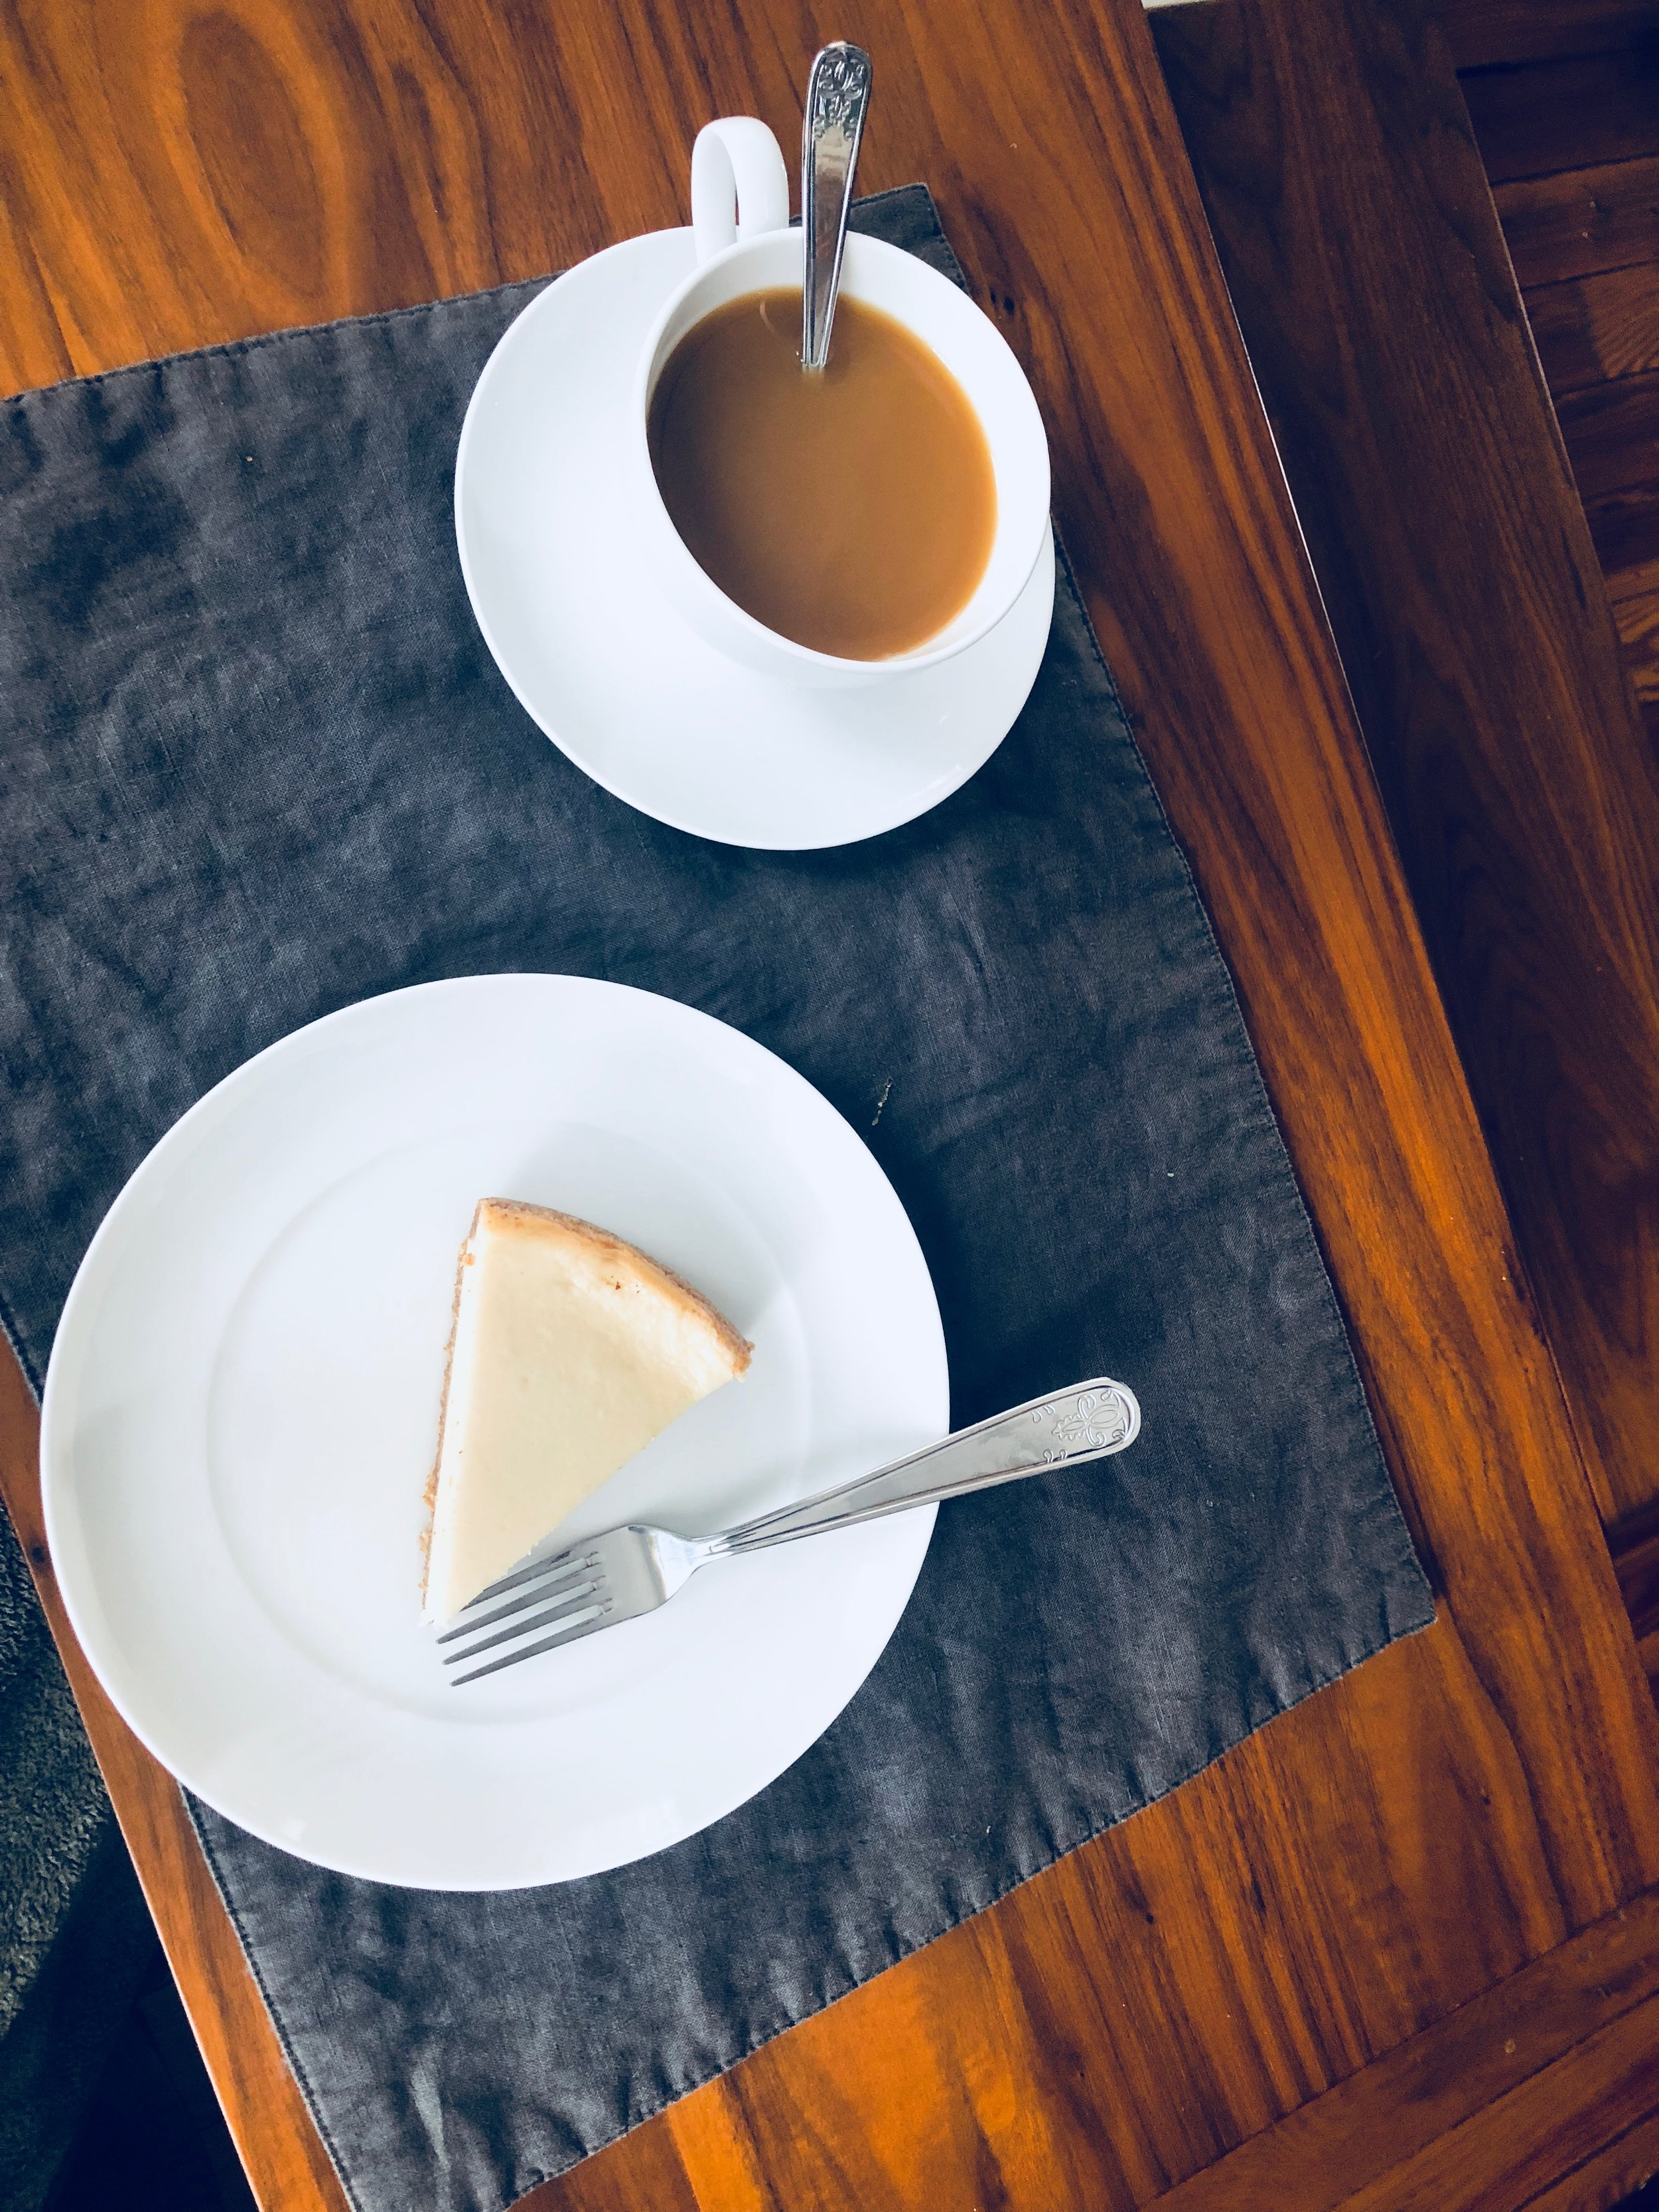 Breakfast - Today it was cheesecake and coffee. Coffee which by the way Mike has figured out how to perfect! He now knows my needs for sugar and cream. An important part of every relationship.